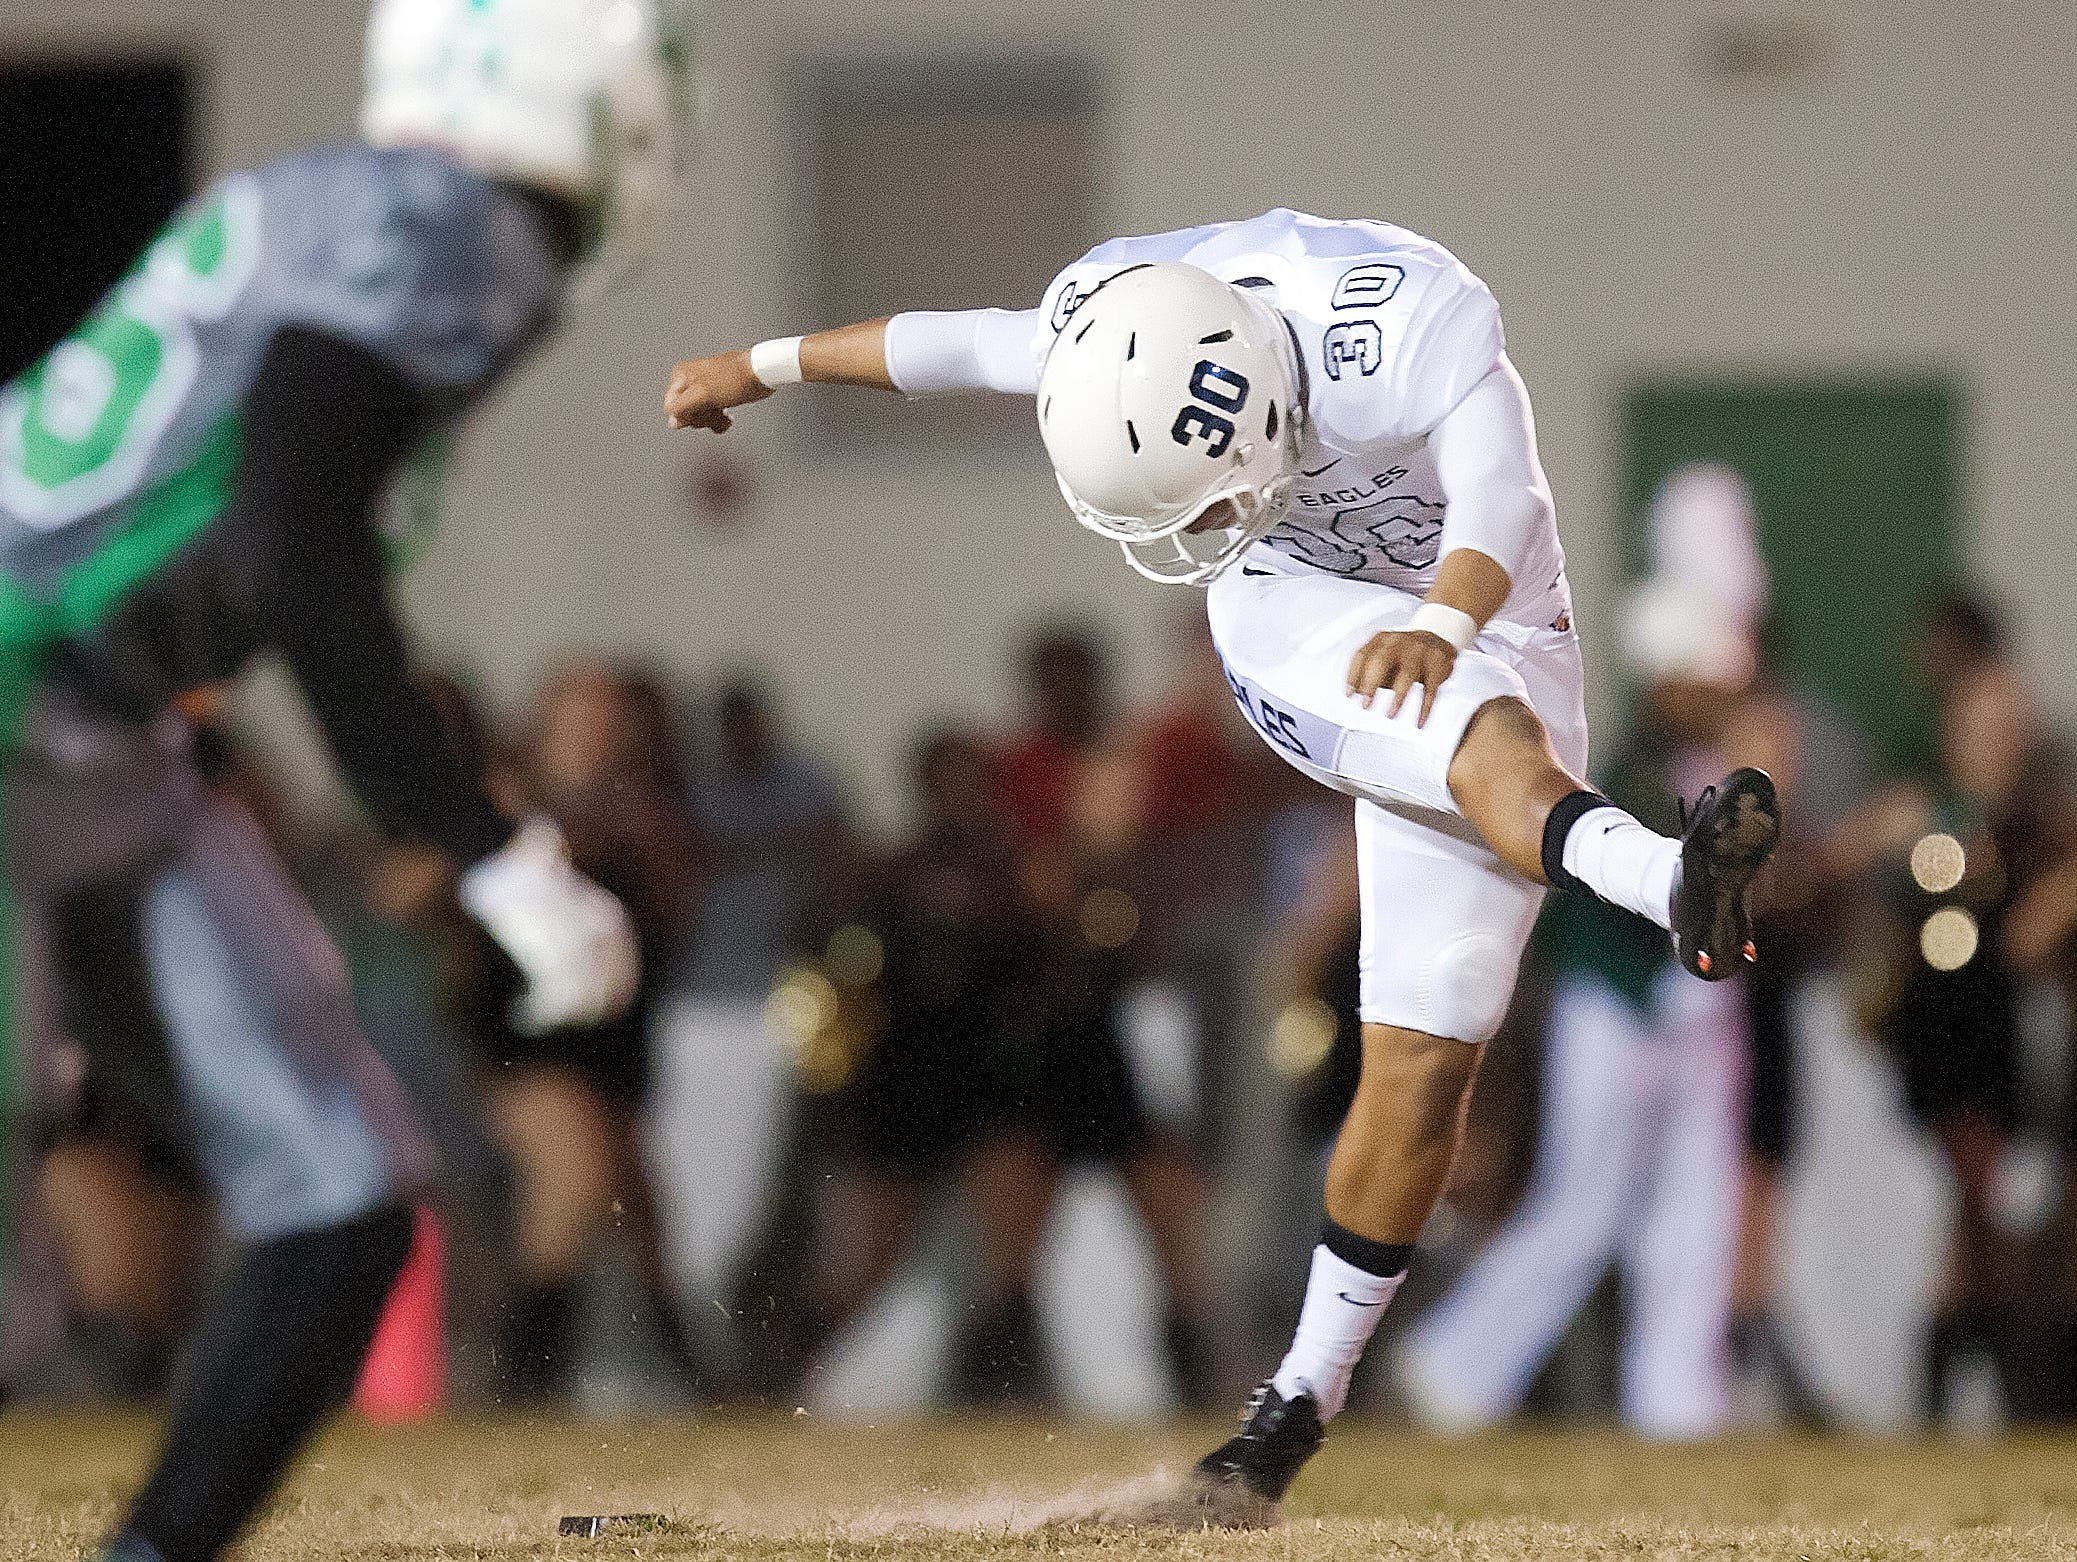 Naples High School's Jerry Nunez kicks off against Fort Myers on Friday (11/20/15) in the Region 6A-3 semifinals at Edison Stadium in Fort Myers. Naples beat Fort Myers 37-26.